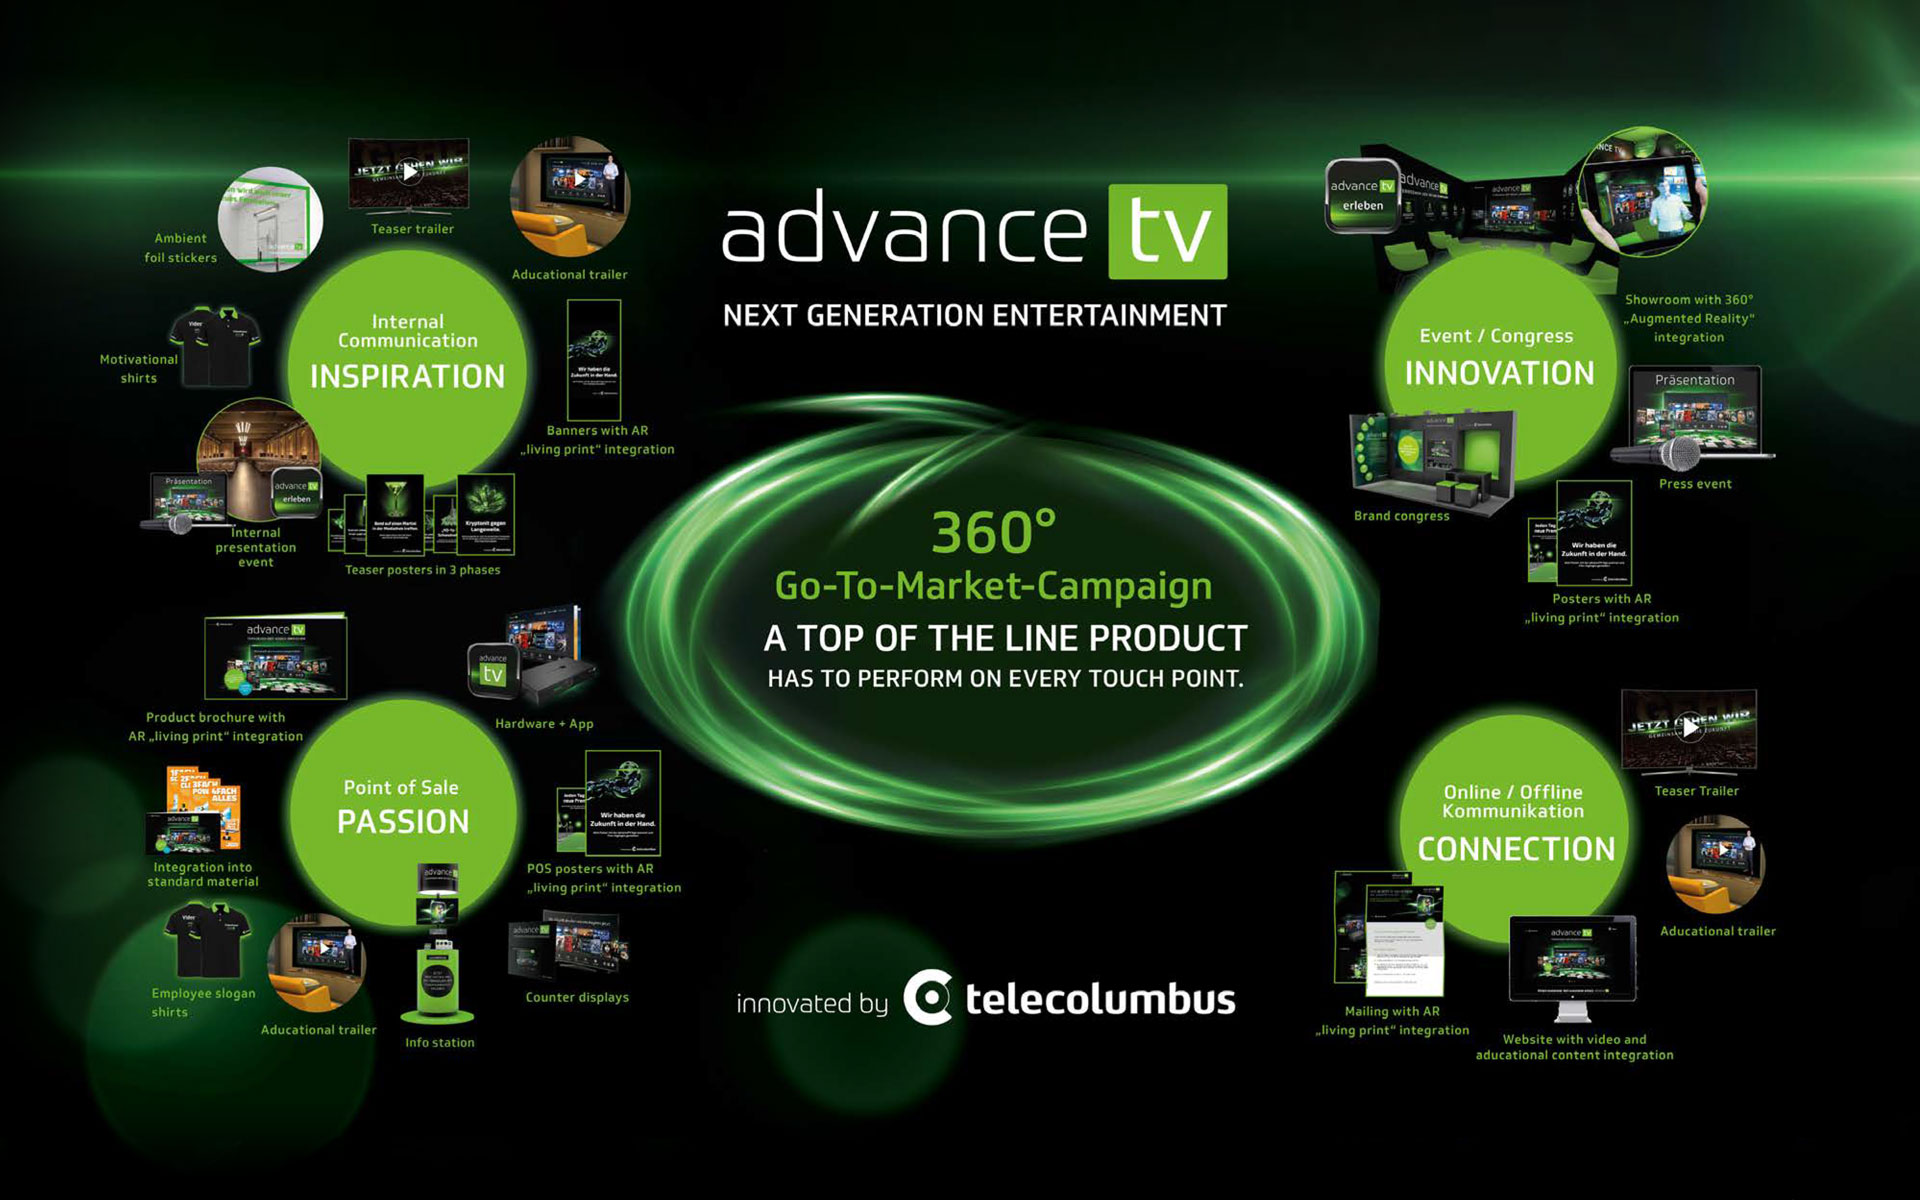 360Grad Go-To-Market-kampagne für advancetv